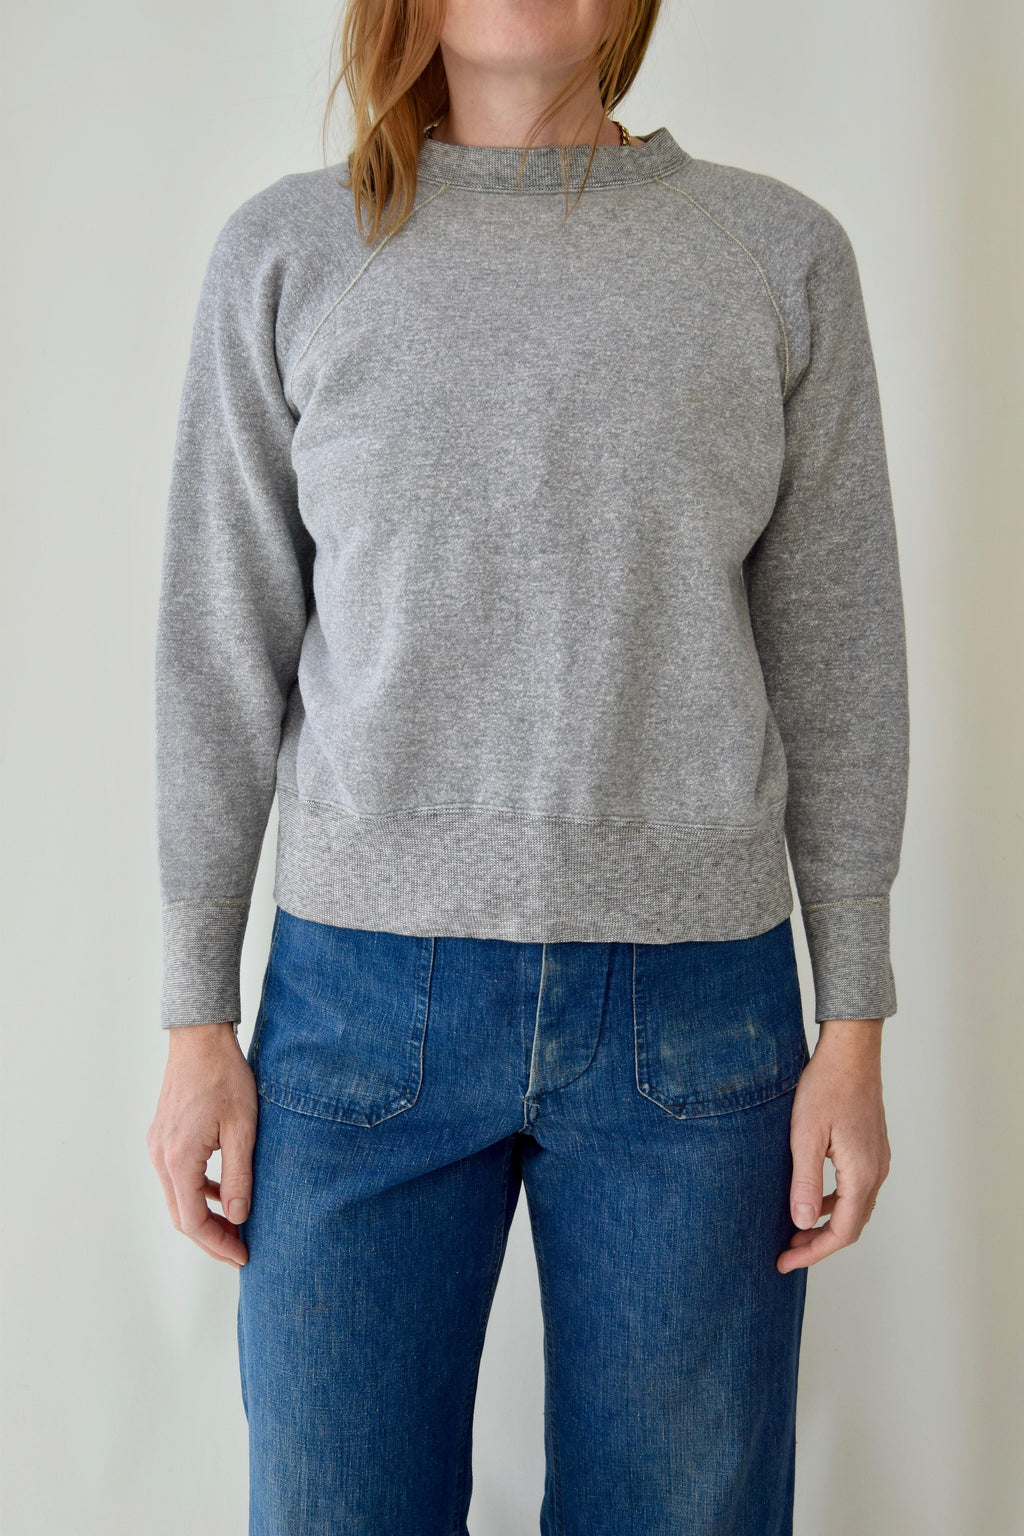 Perfect Cotton Heather Grey 1960's Flagg Utica Bodygard Sweatshirt